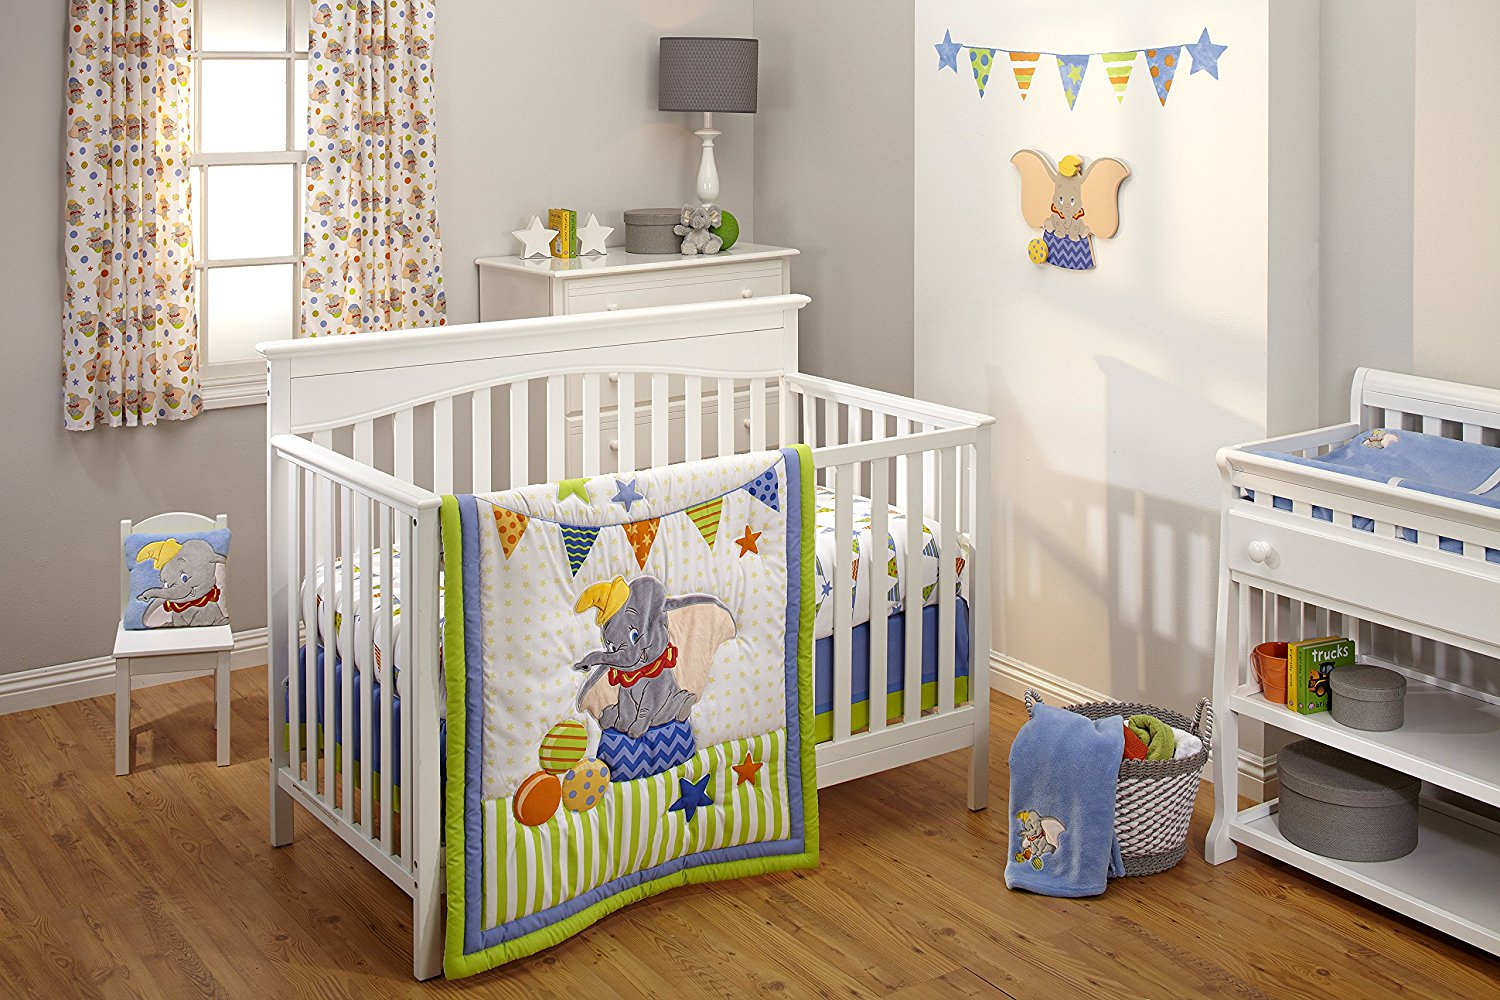 Lion King Nursery Set | Monkey Crib Set | Winnie The Pooh Crib Bedding Set